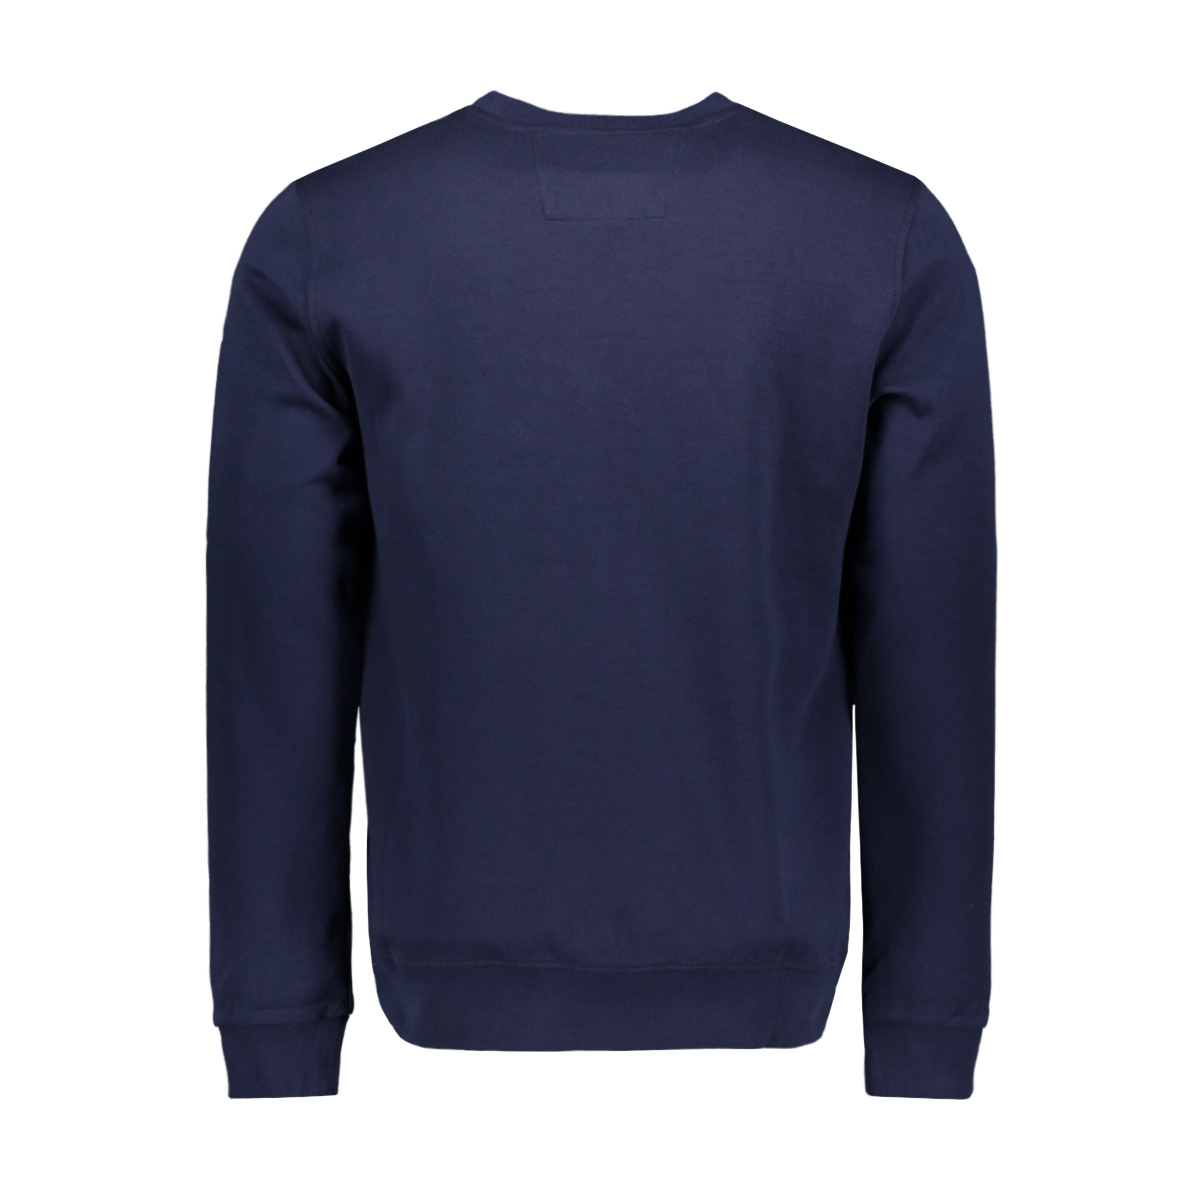 paremoremo 19mn303 n.z.a. sweater 266 navy